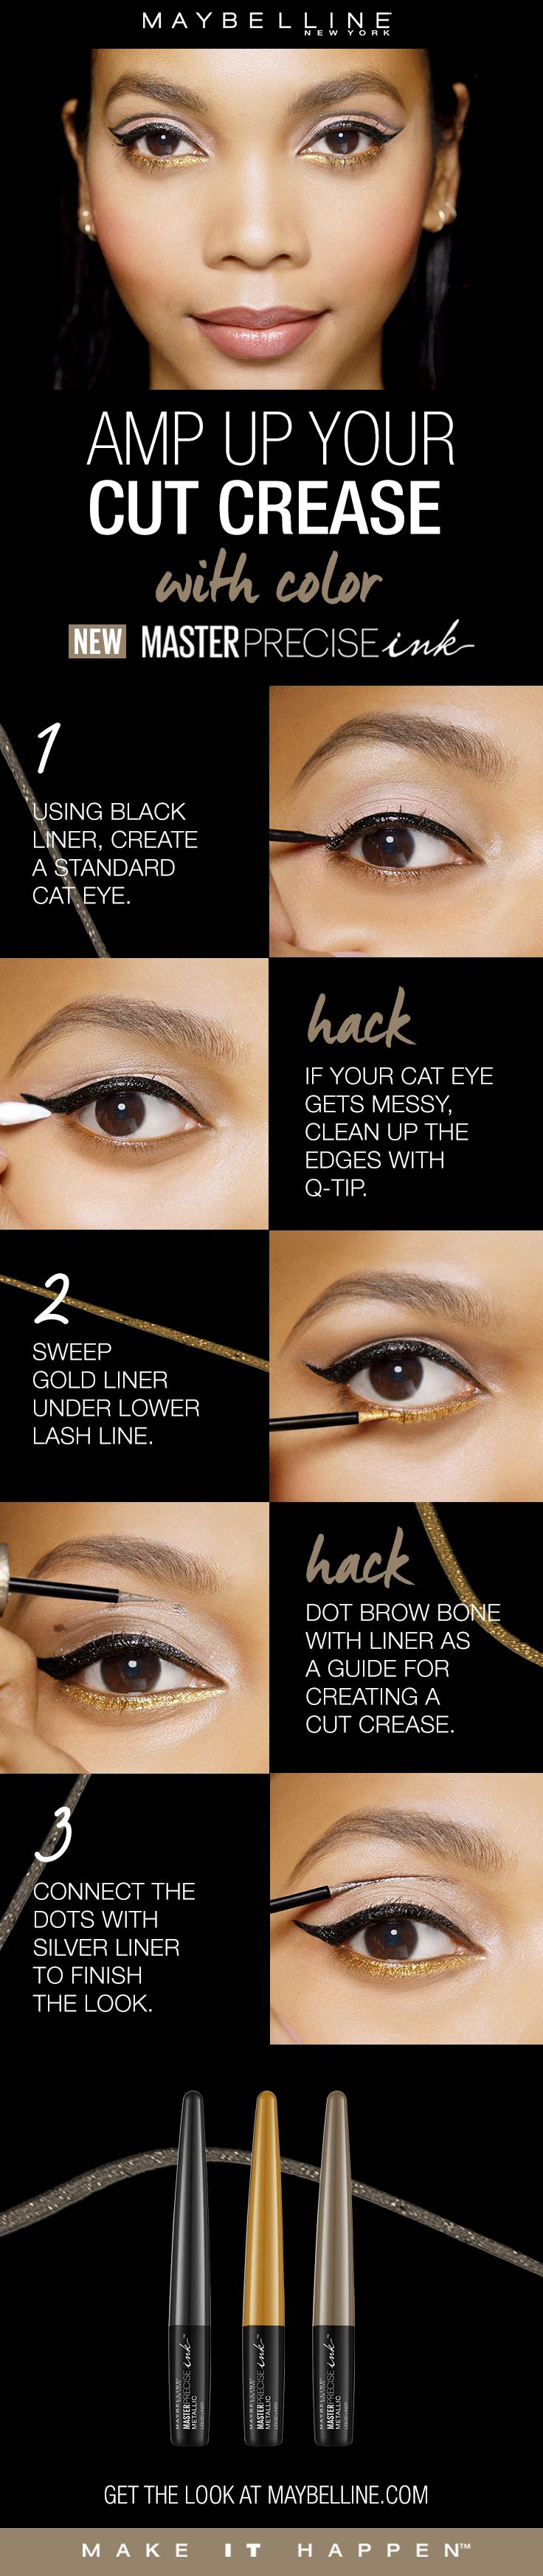 Master Precise Ink Metallic Liquid Liner is a long lasting, waterproof eyeliner with a smart-tip brush. Amp up your cut crease with color!  First, use the black liner to create a standard cat eye.  If your cat eye gets messy, clean up the edges with a q-tip.  Sweep gold liner under the lower lash line.  Dot the brow bone with liner as a guide to create the cut crease.  Lastly, connect the dots with silver liner to finish the look.